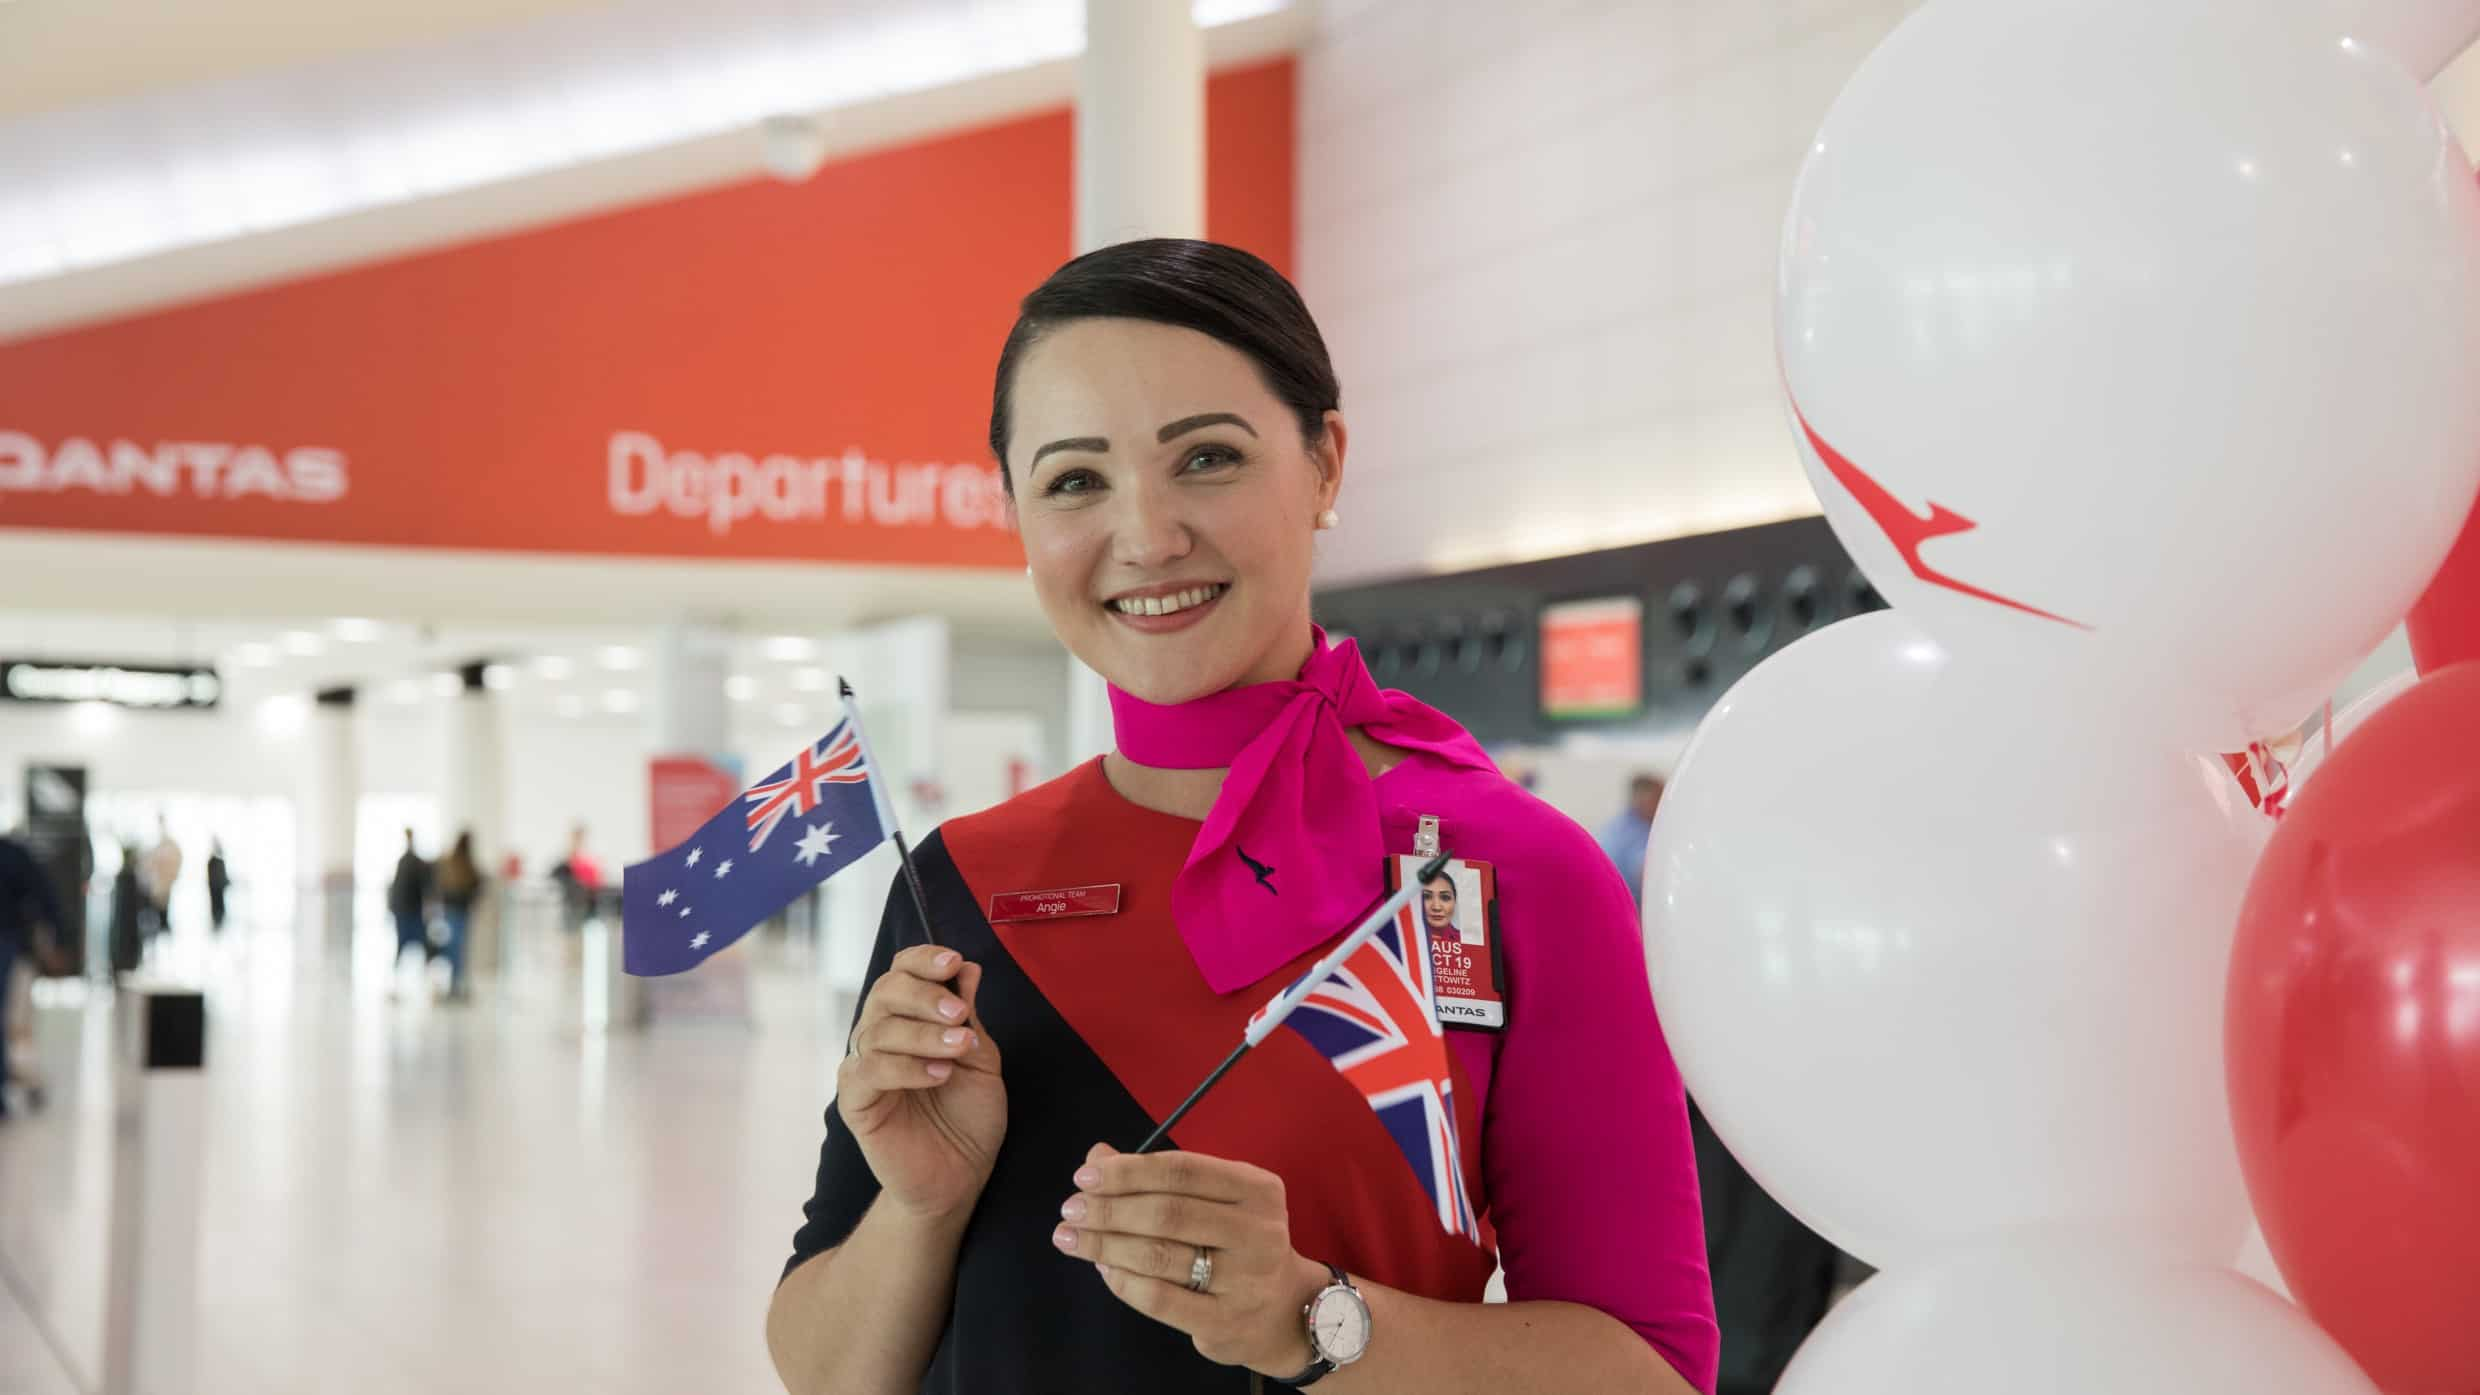 Female Qantas staff member holding AU and English flags in airport departure lounge